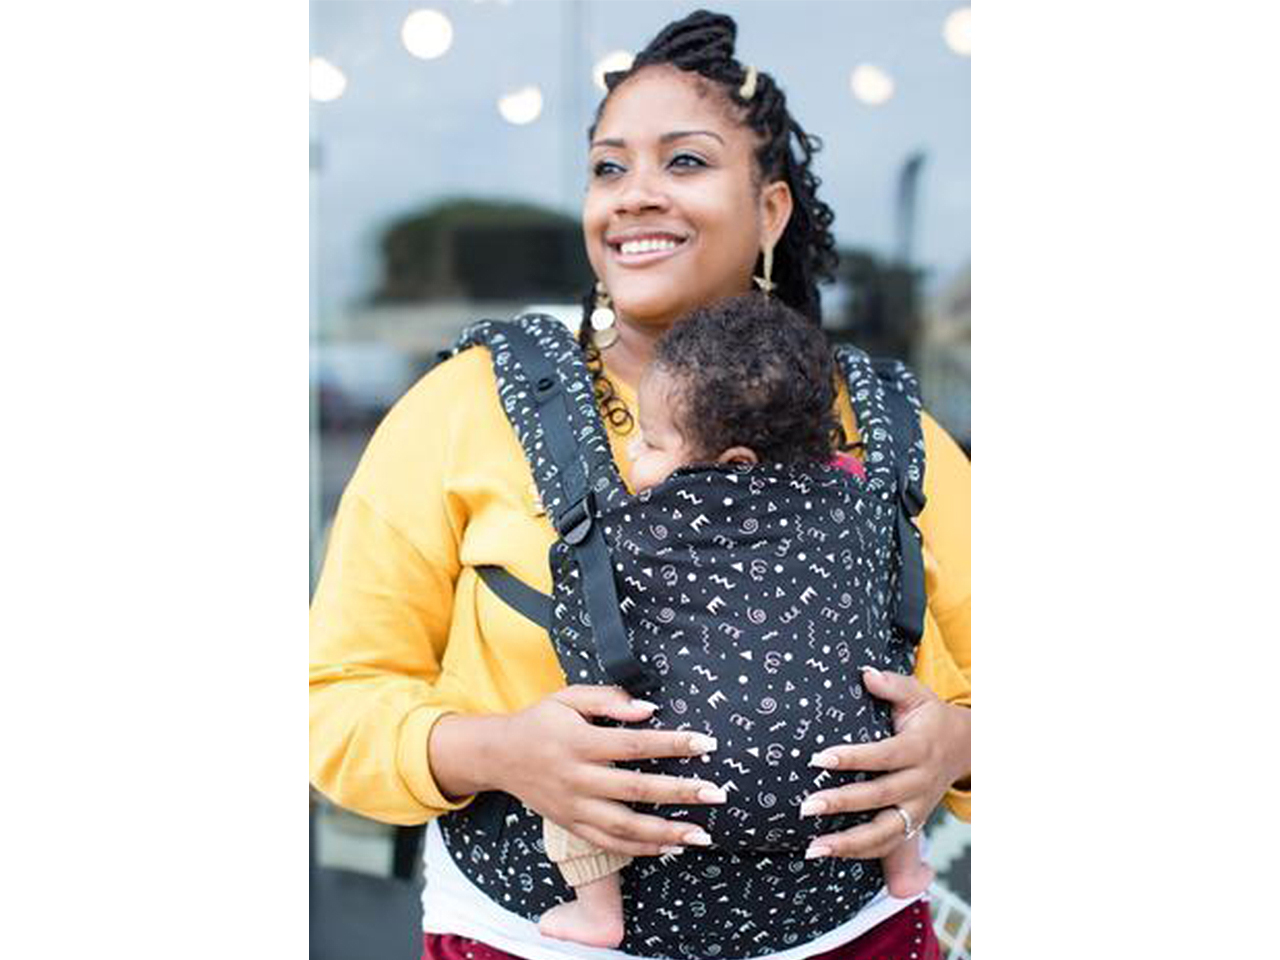 Mom carrying her baby in a Tula Free-to-Grow baby carrier